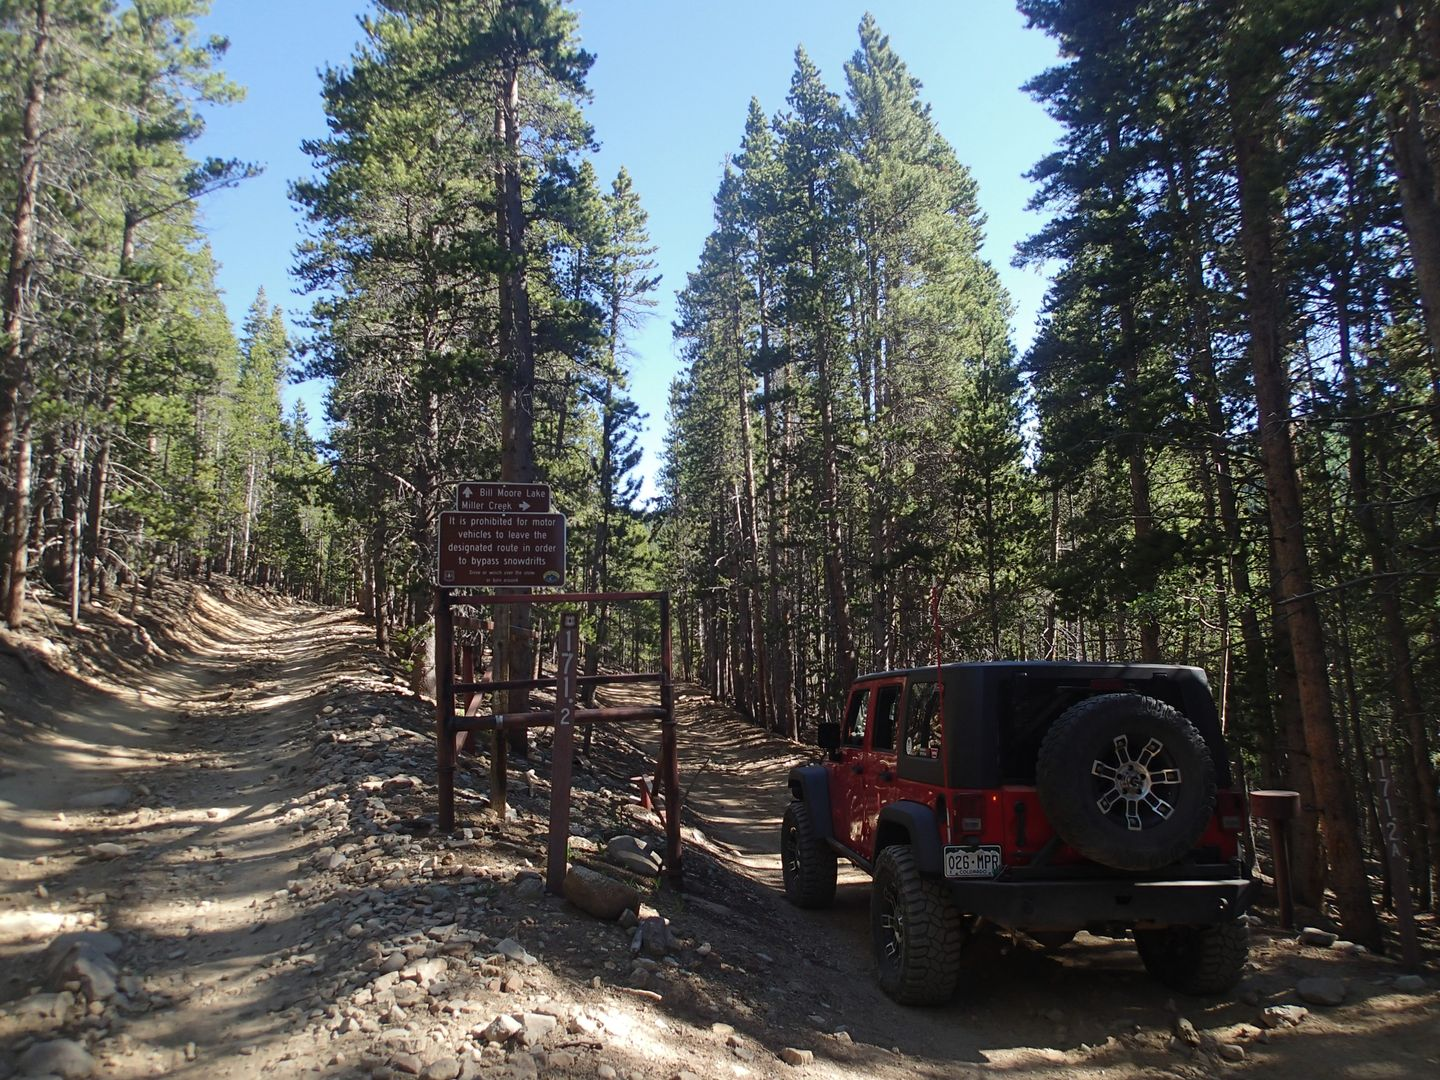 Miller Creek - Waypoint 1: Trailhead